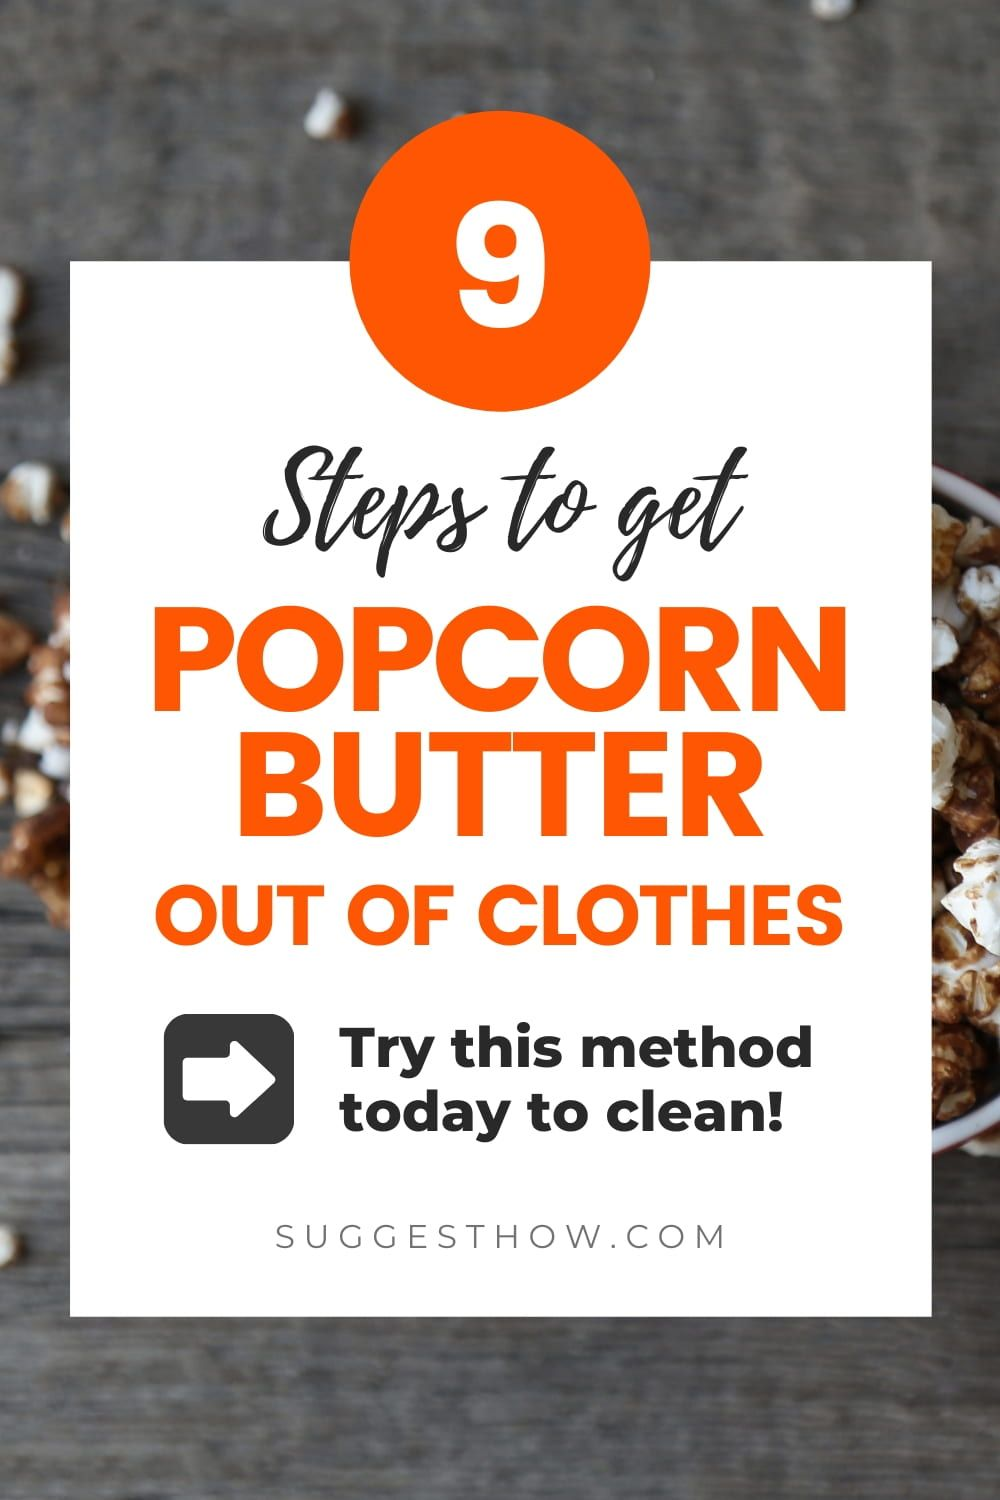 ad793faf60415a235ef8a97181c6f5d3 - How To Get Popcorn Butter Stains Out Of Clothes